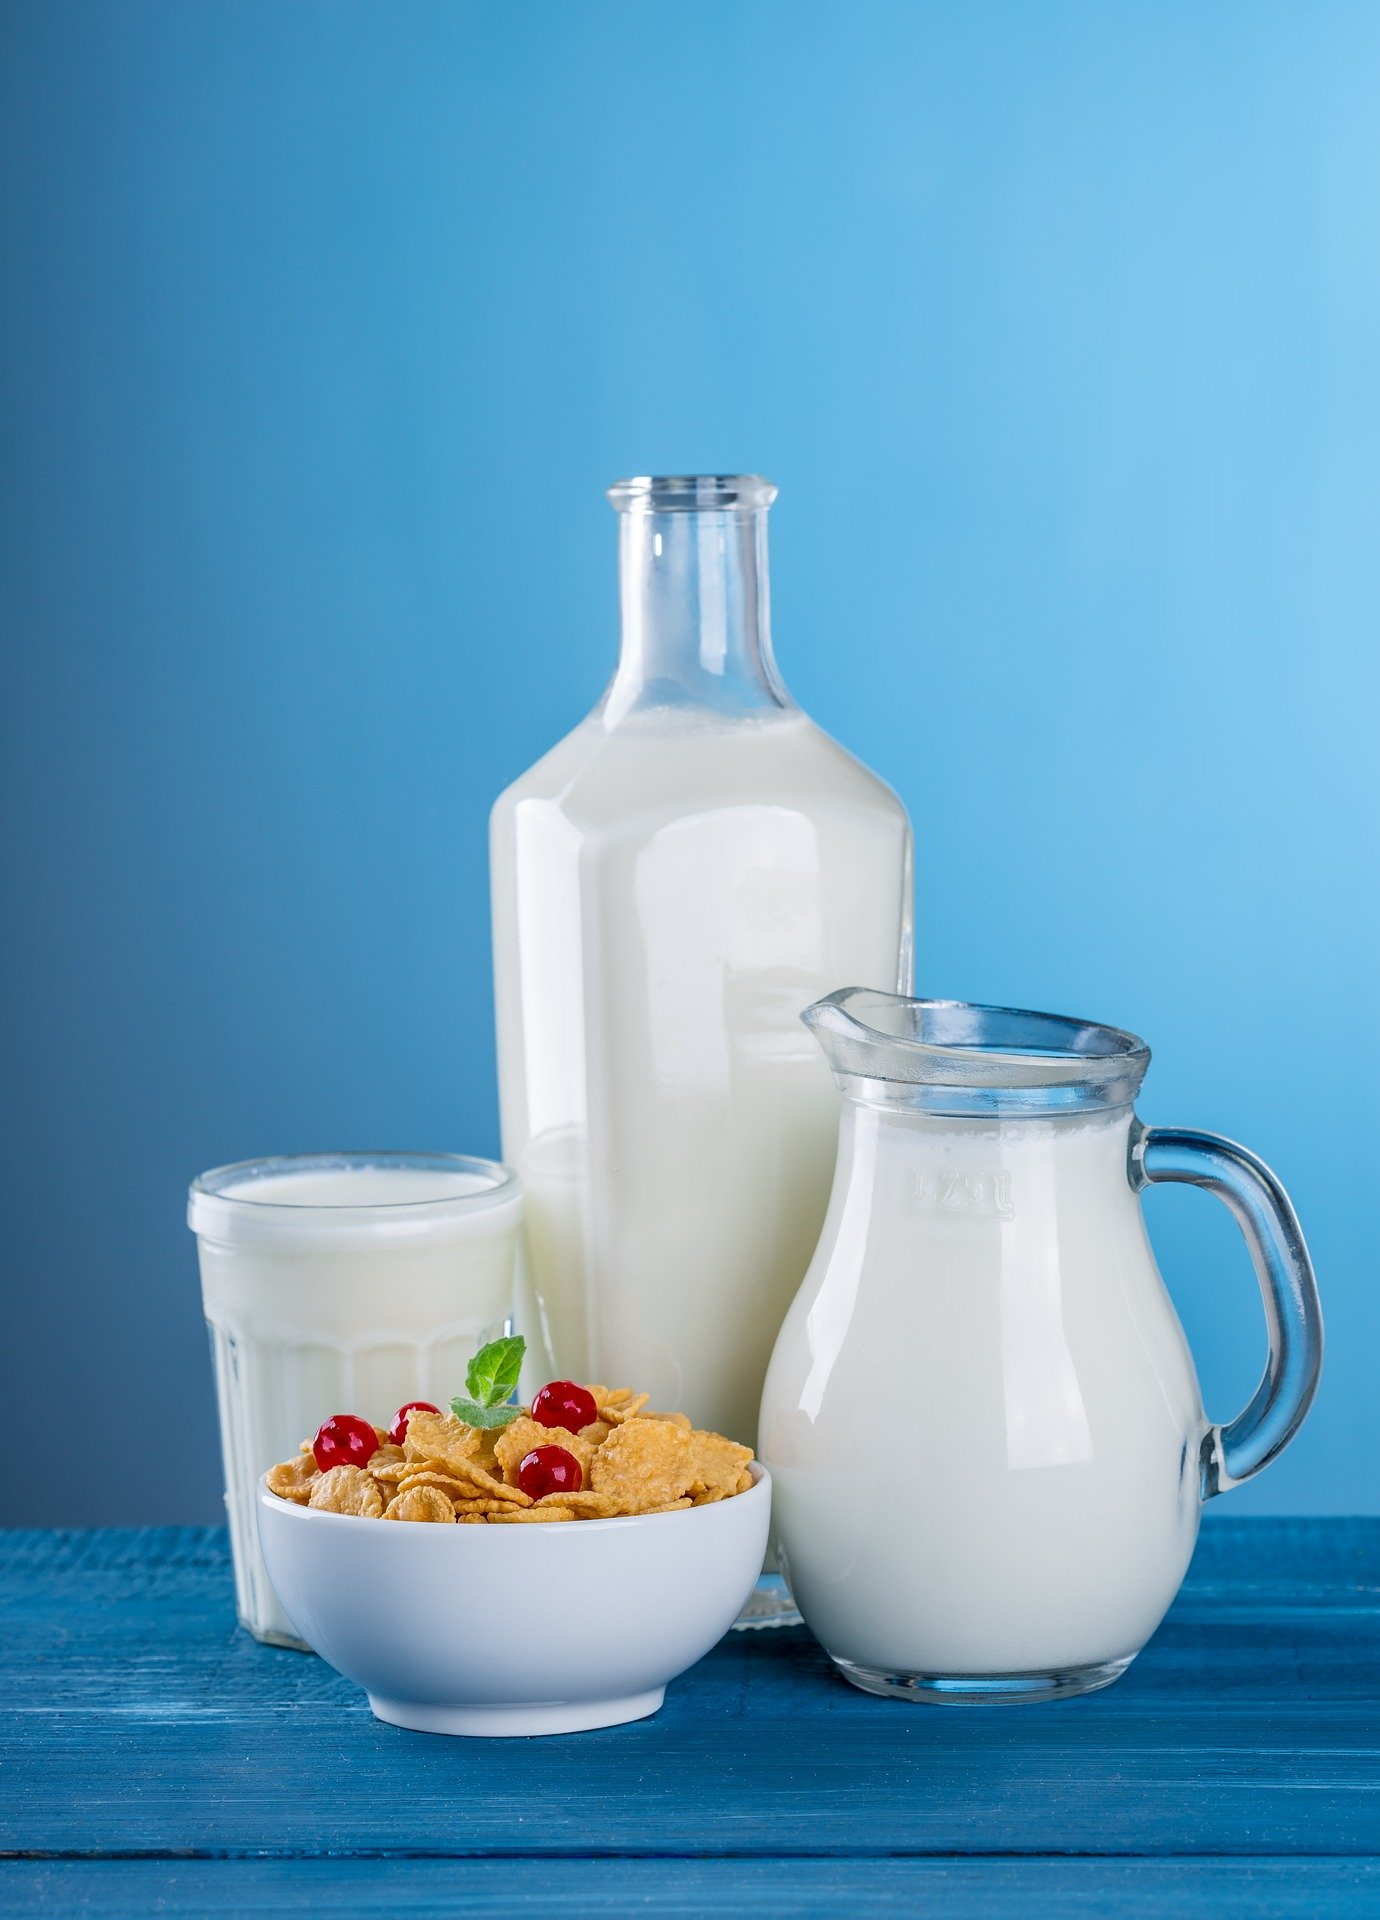 Understanding consumer perceptions of sustainability in the dairy industry